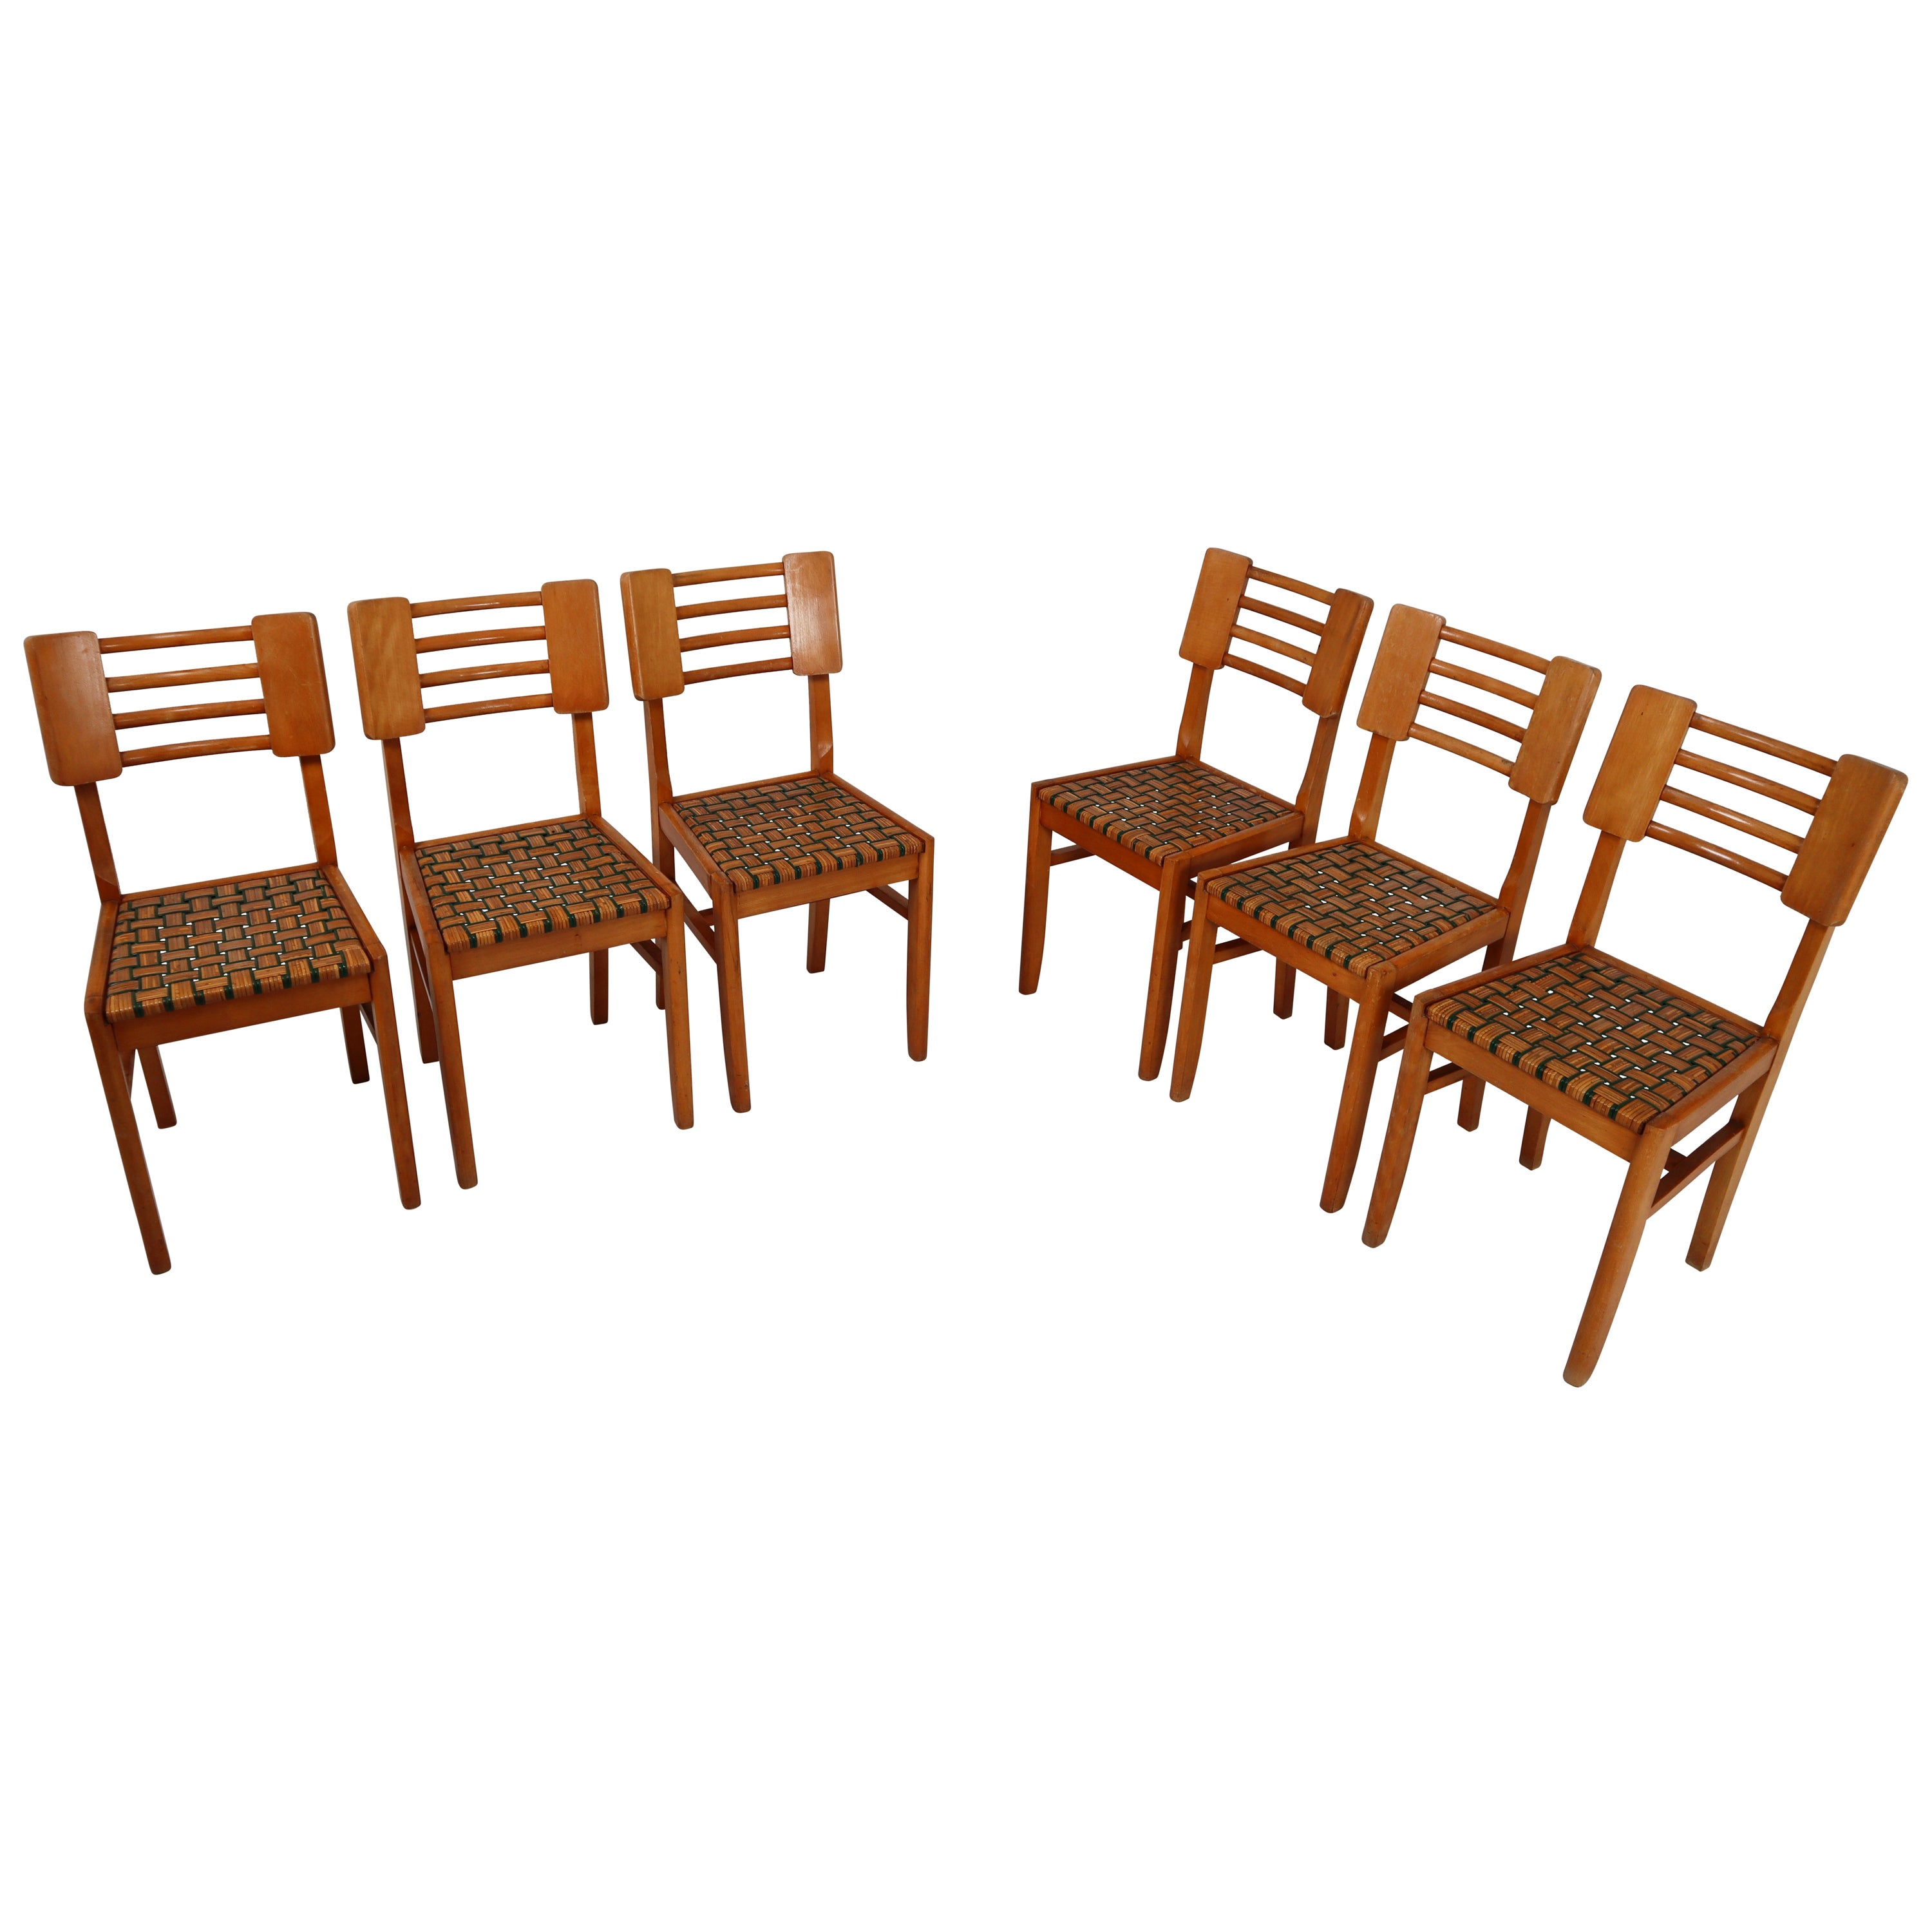 Set of Six Midcentury French Dinner Chairs, circa 1950